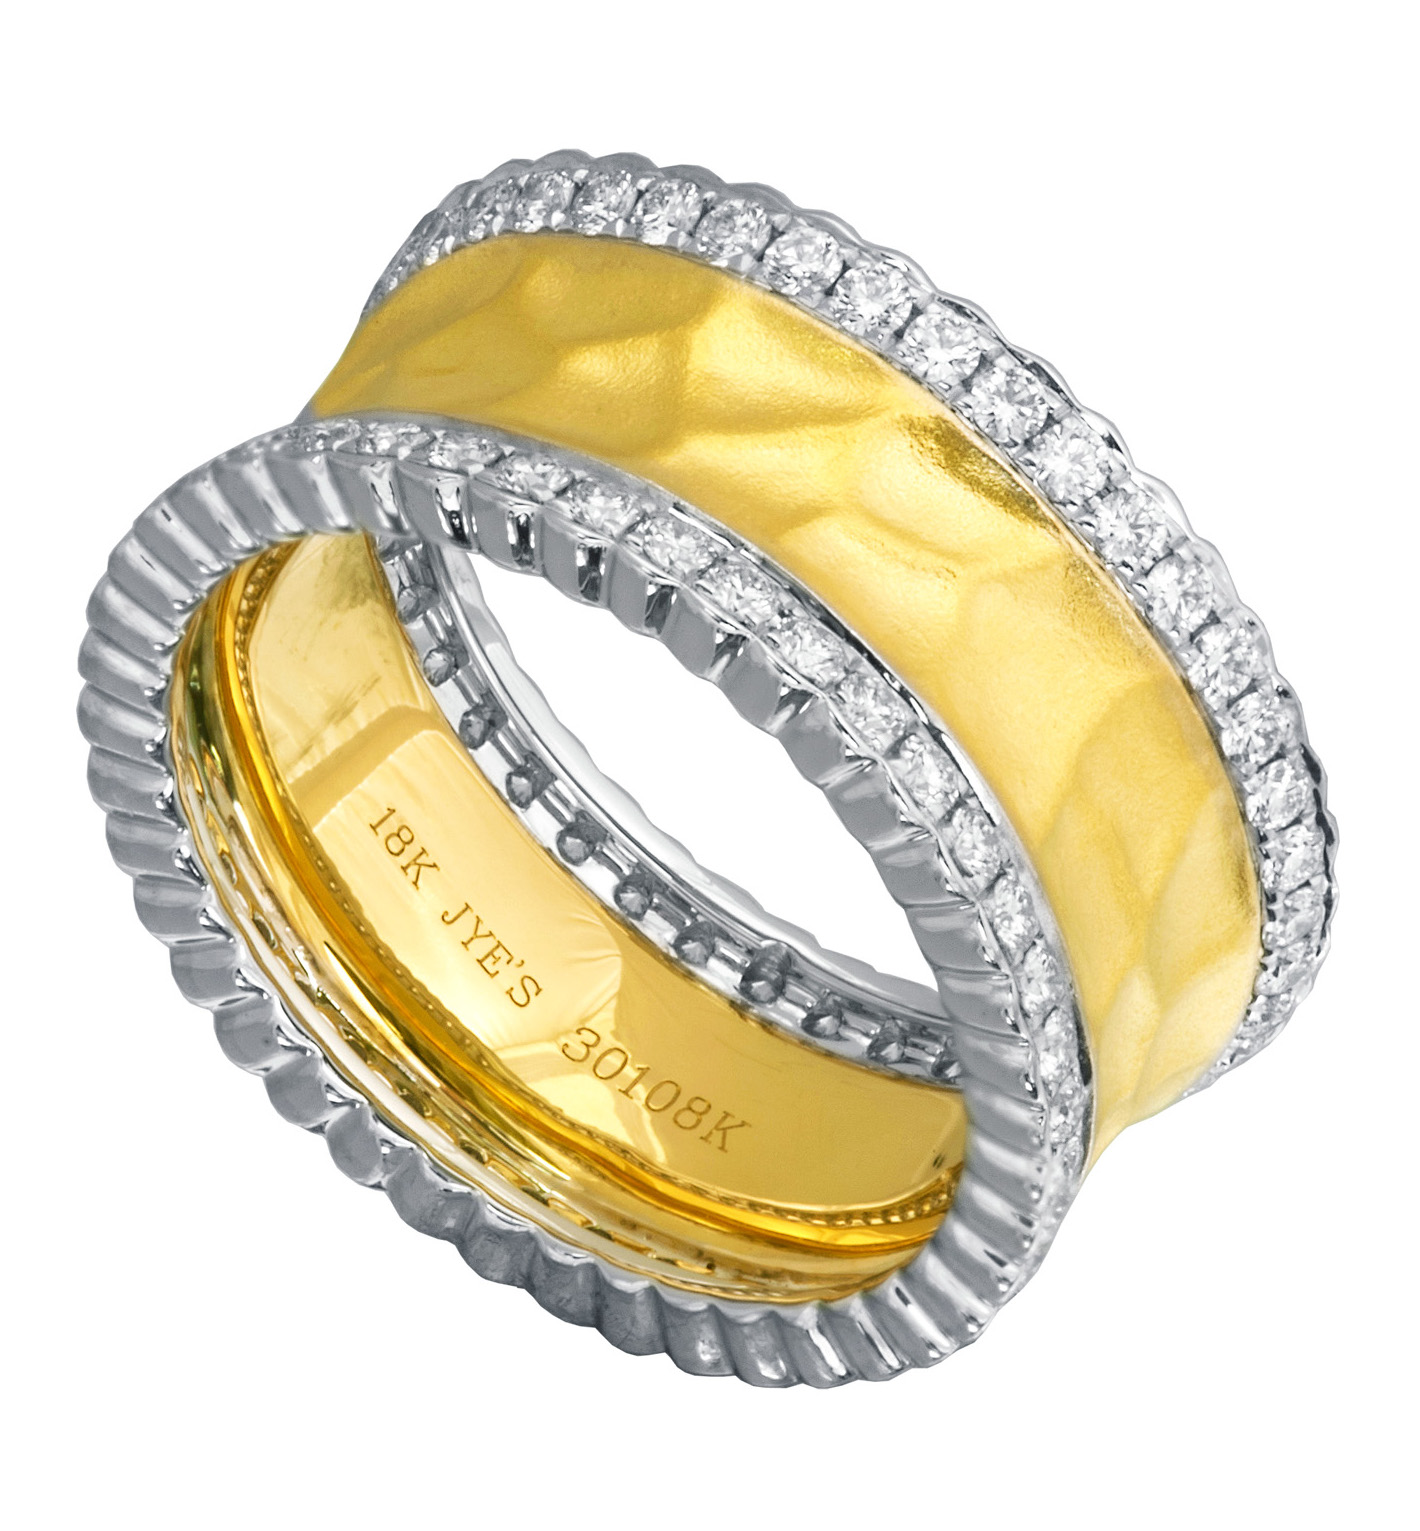 Jye Luxury two-tone ring | JCK On Your Market